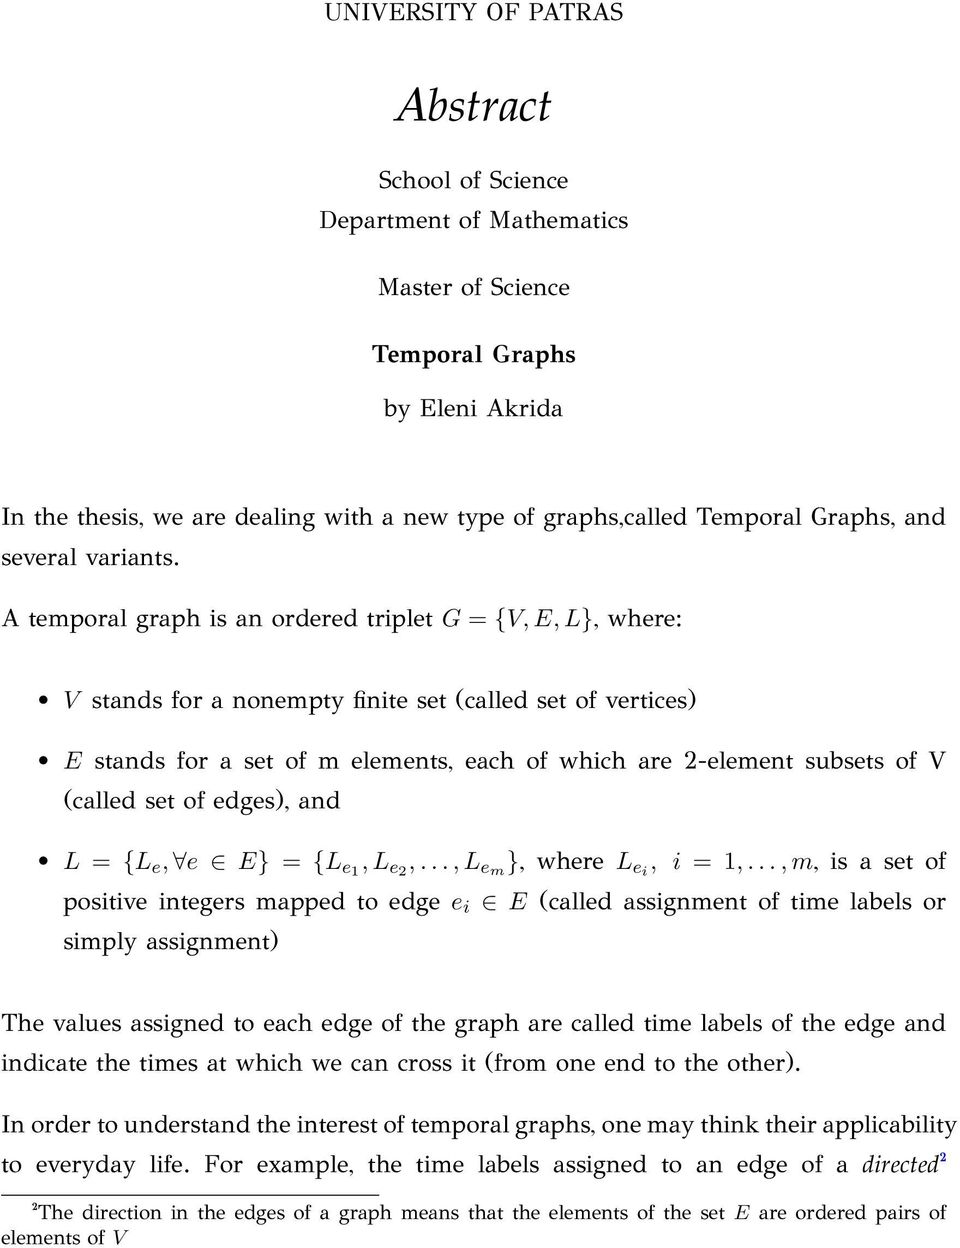 A temporal graph is an ordered triplet G = {V, E, L}, where: V stands for a nonempty finite set (called set of vertices) E stands for a set of m elements, each of which are 2-element subsets of V